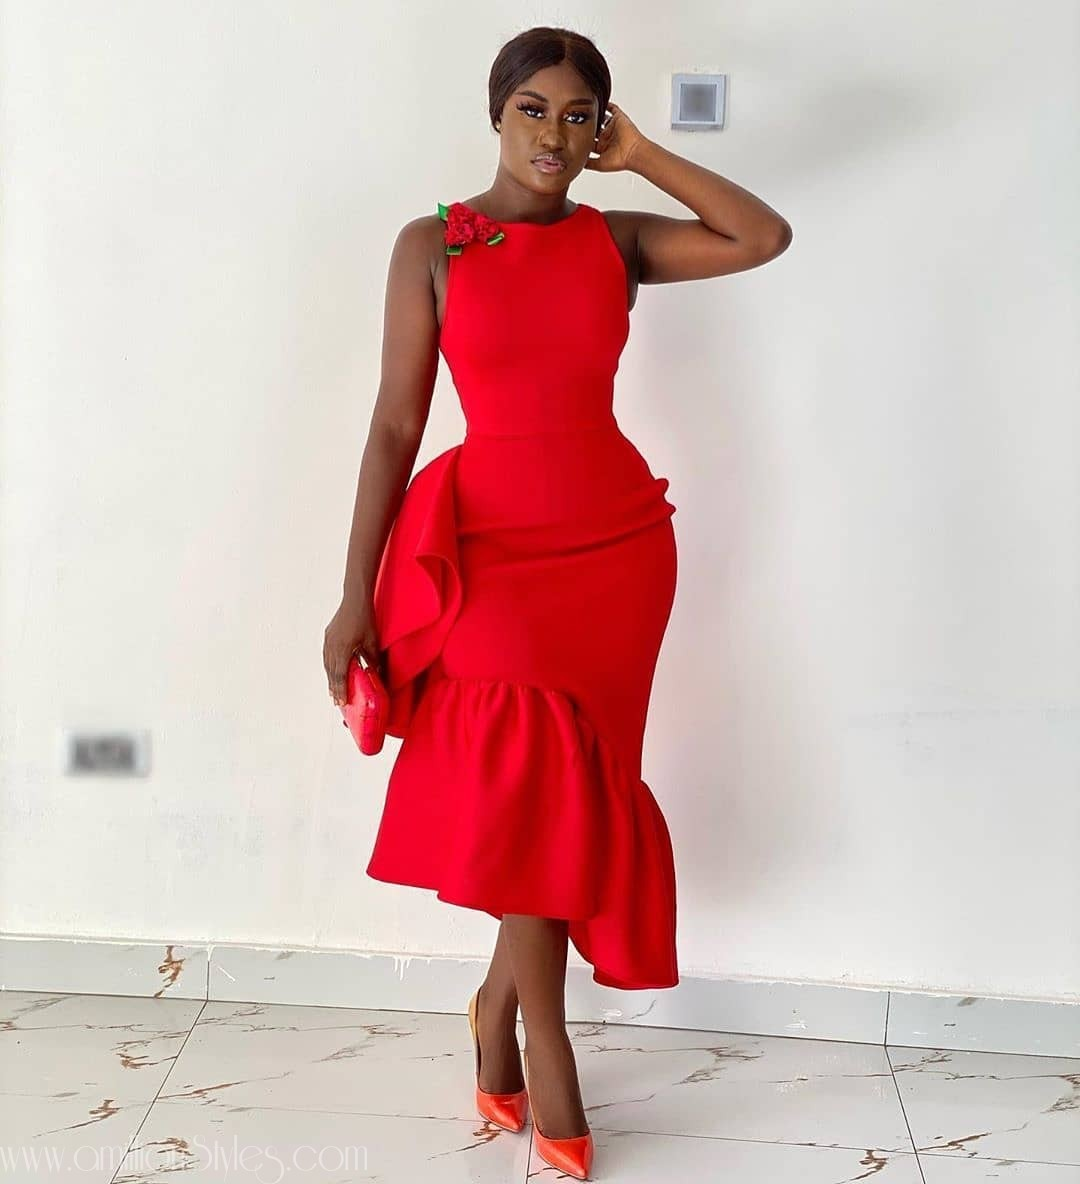 See These Black Women Look Gorgeous Wearing Red